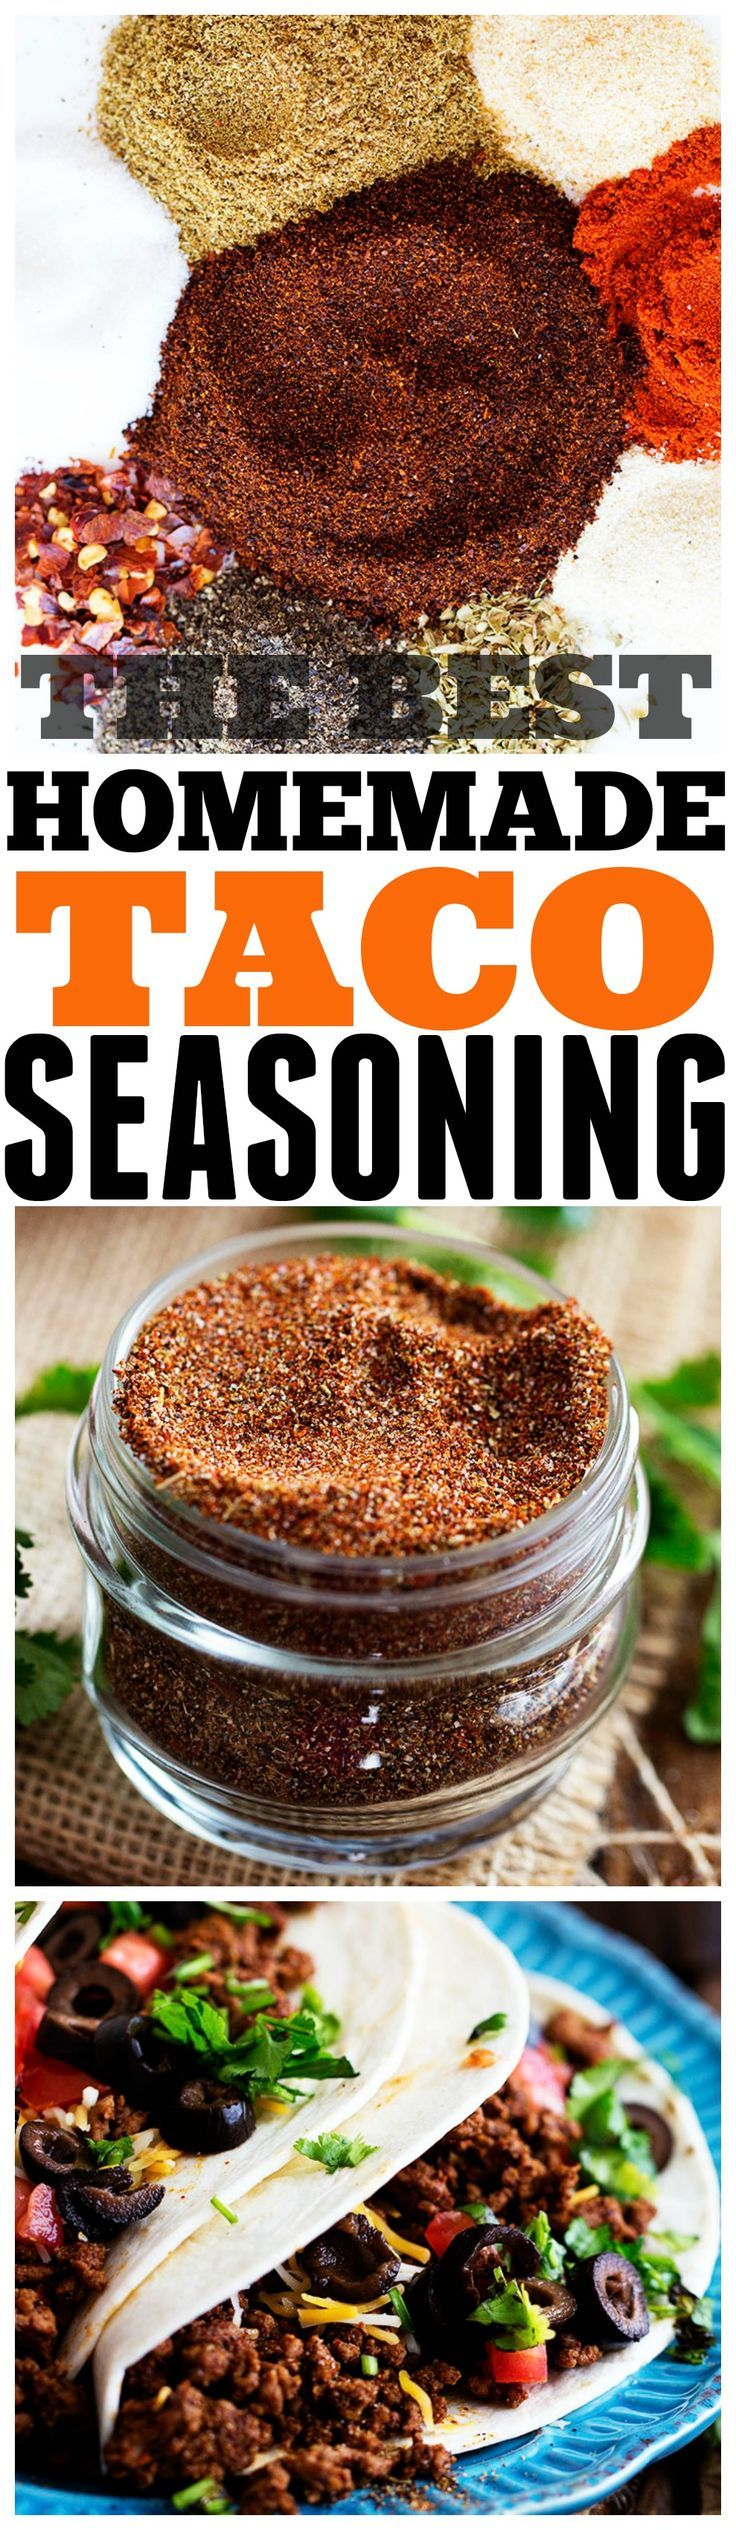 The Best Homemade Taco Seasoning - Perfect amount of spices and you will never buy it again!